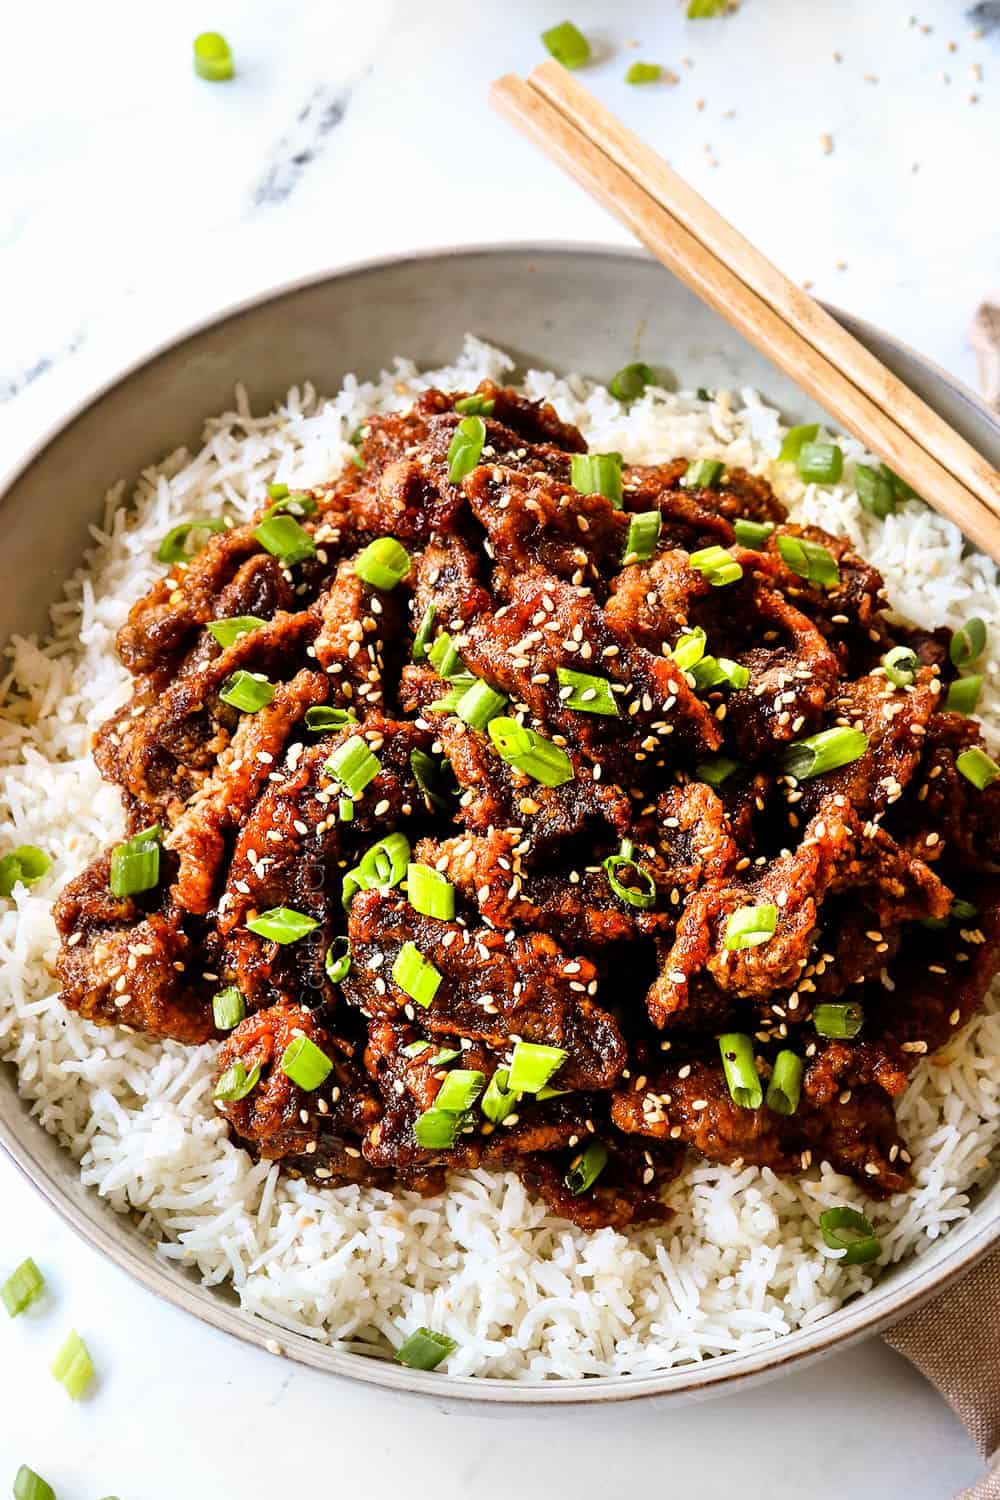 up close of Chinese ginger beef over rice showing how crispy the beef is